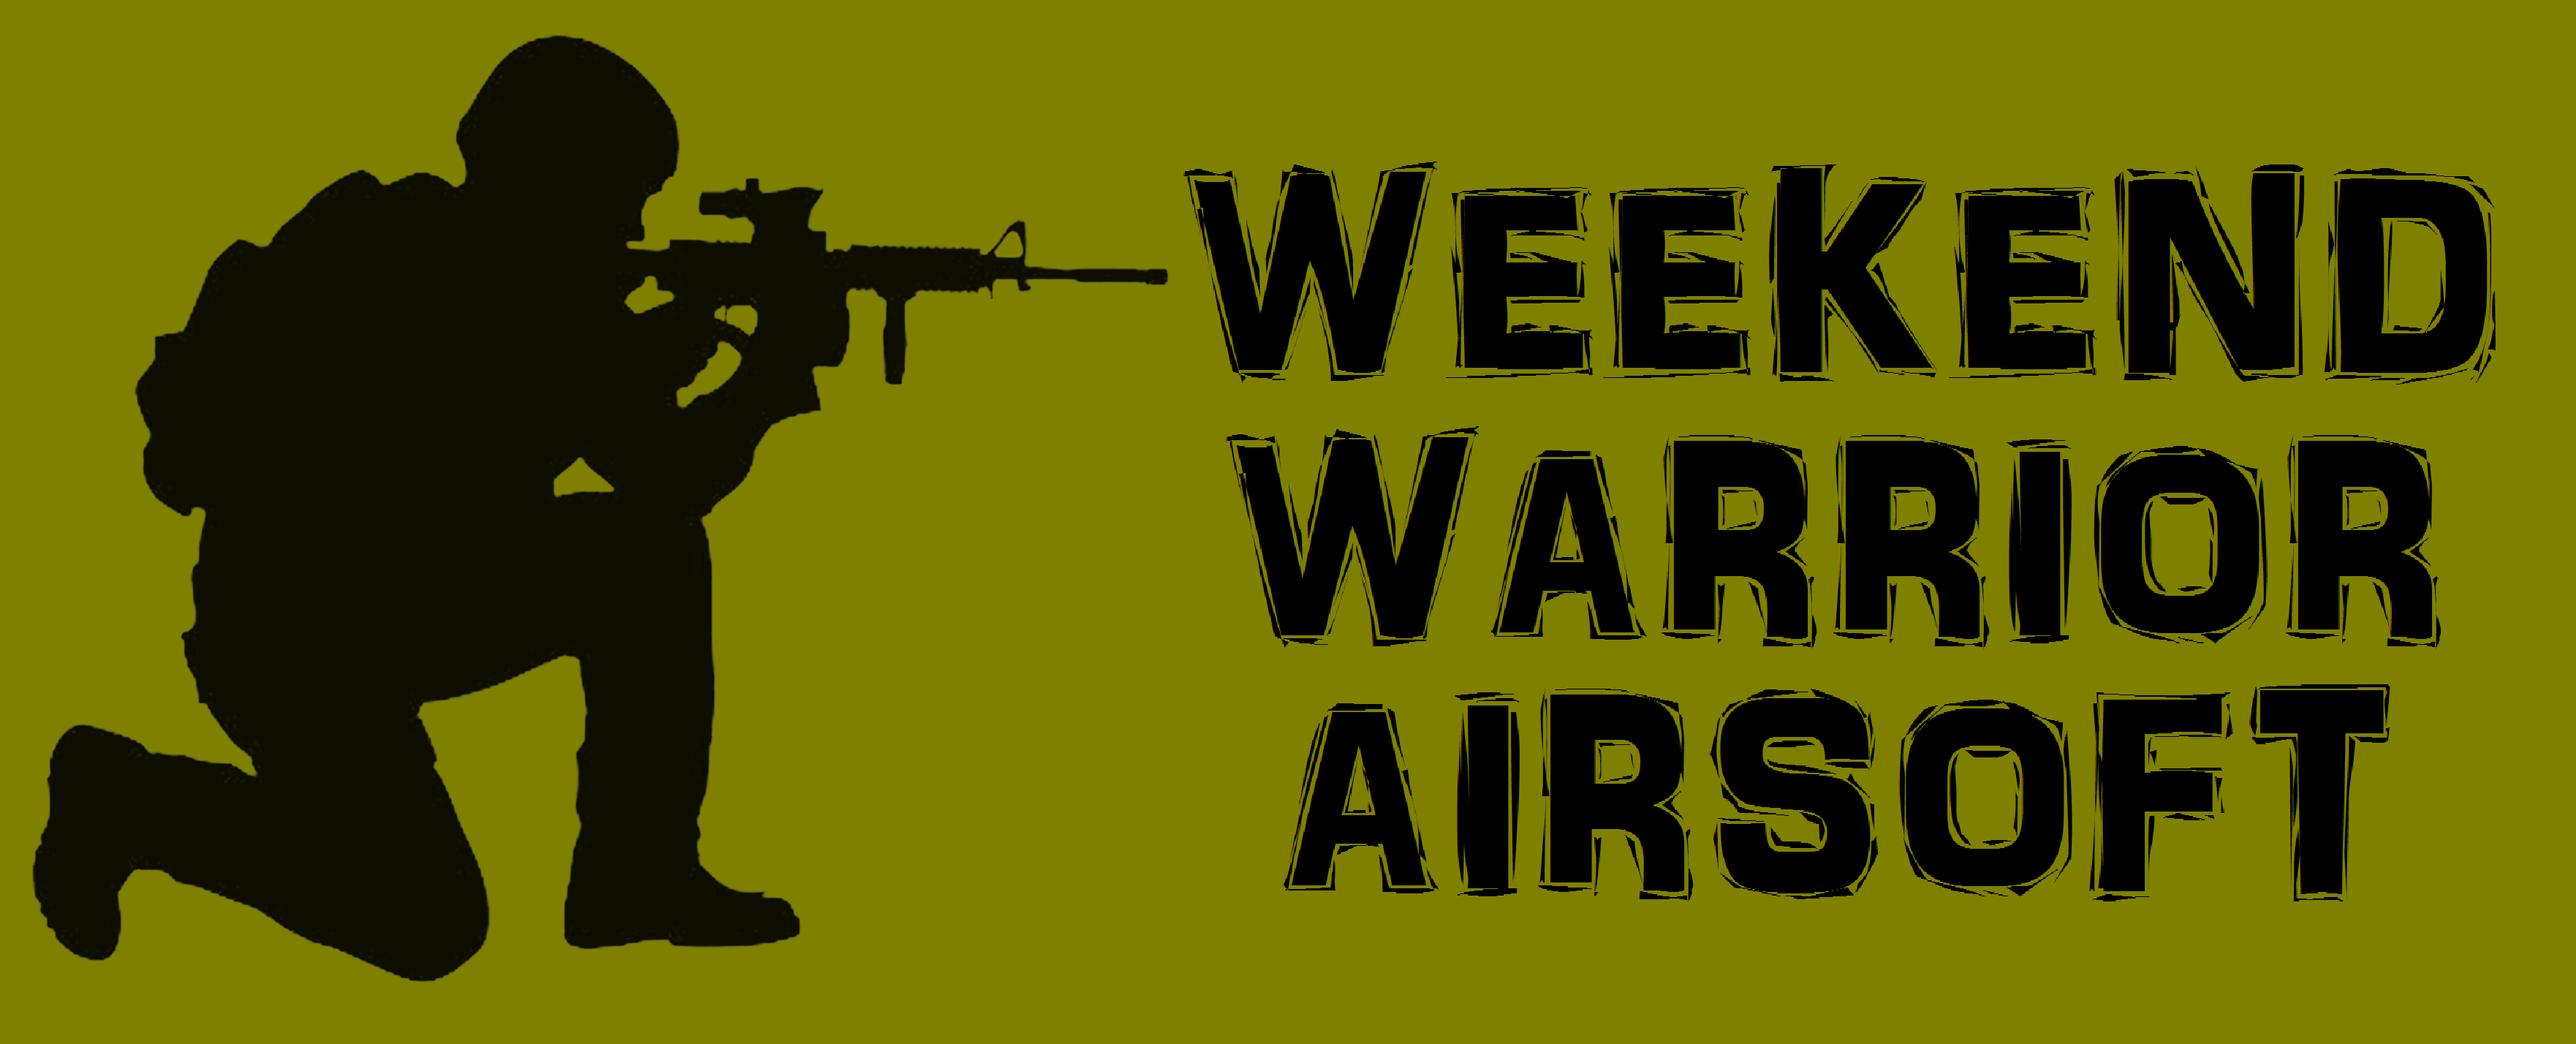 Weekend Warrior Airsoft